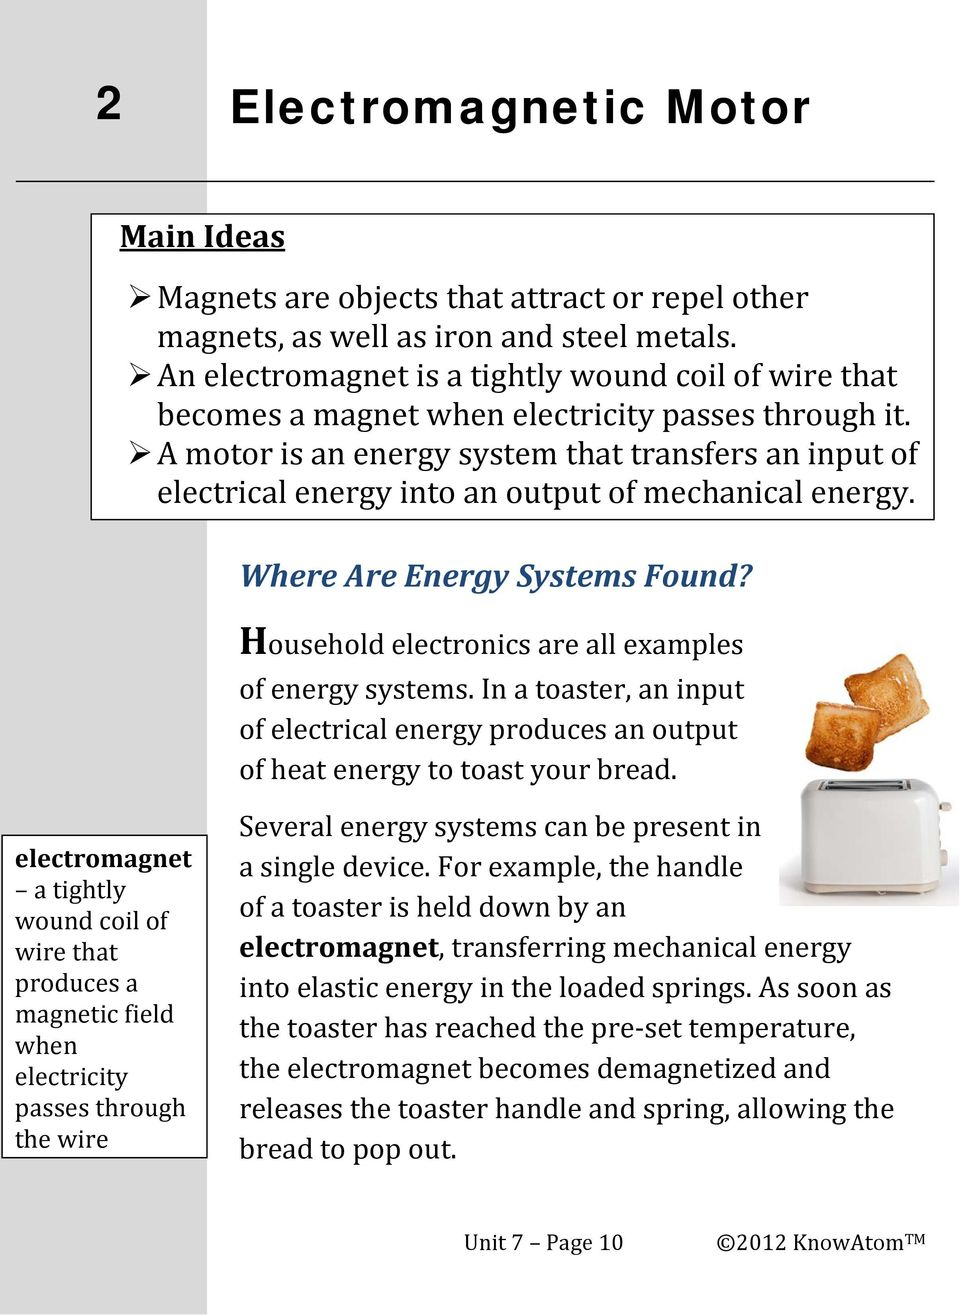 A motor is an energy system that transfers an input of electrical energy into an output of mechanical energy. Where Are Energy Systems Found? Household electronics are all examples of energy systems.